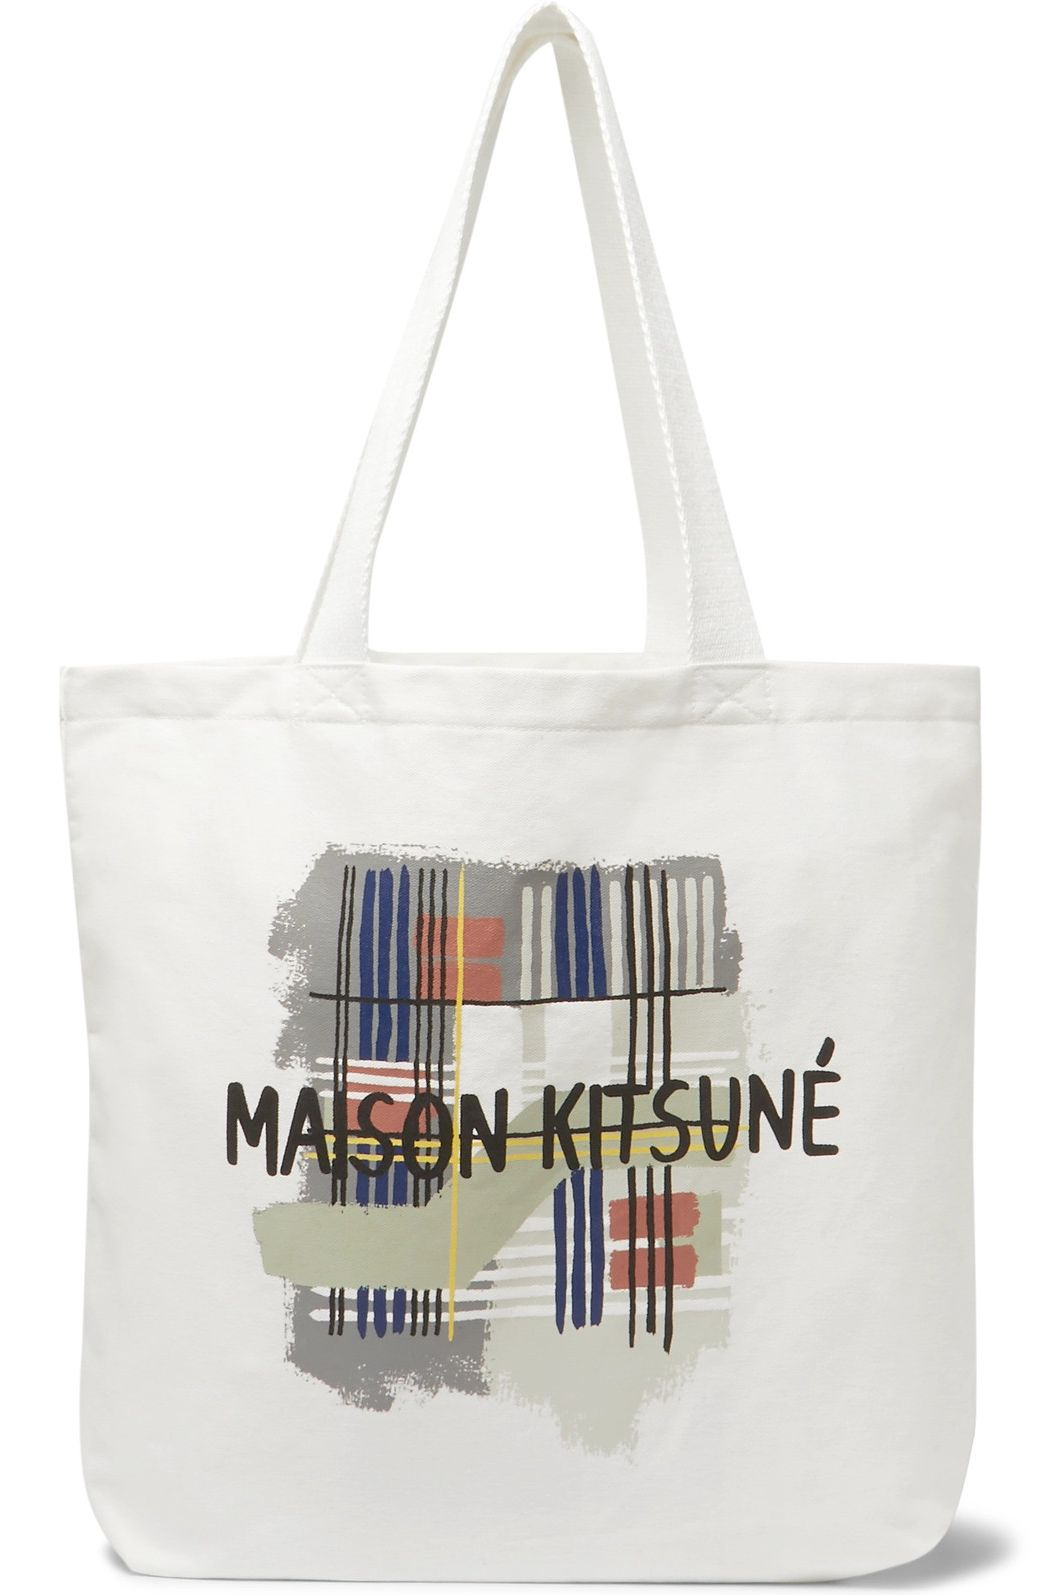 Maison Kitsuné Printed Cotton-Canvas Tote Bag